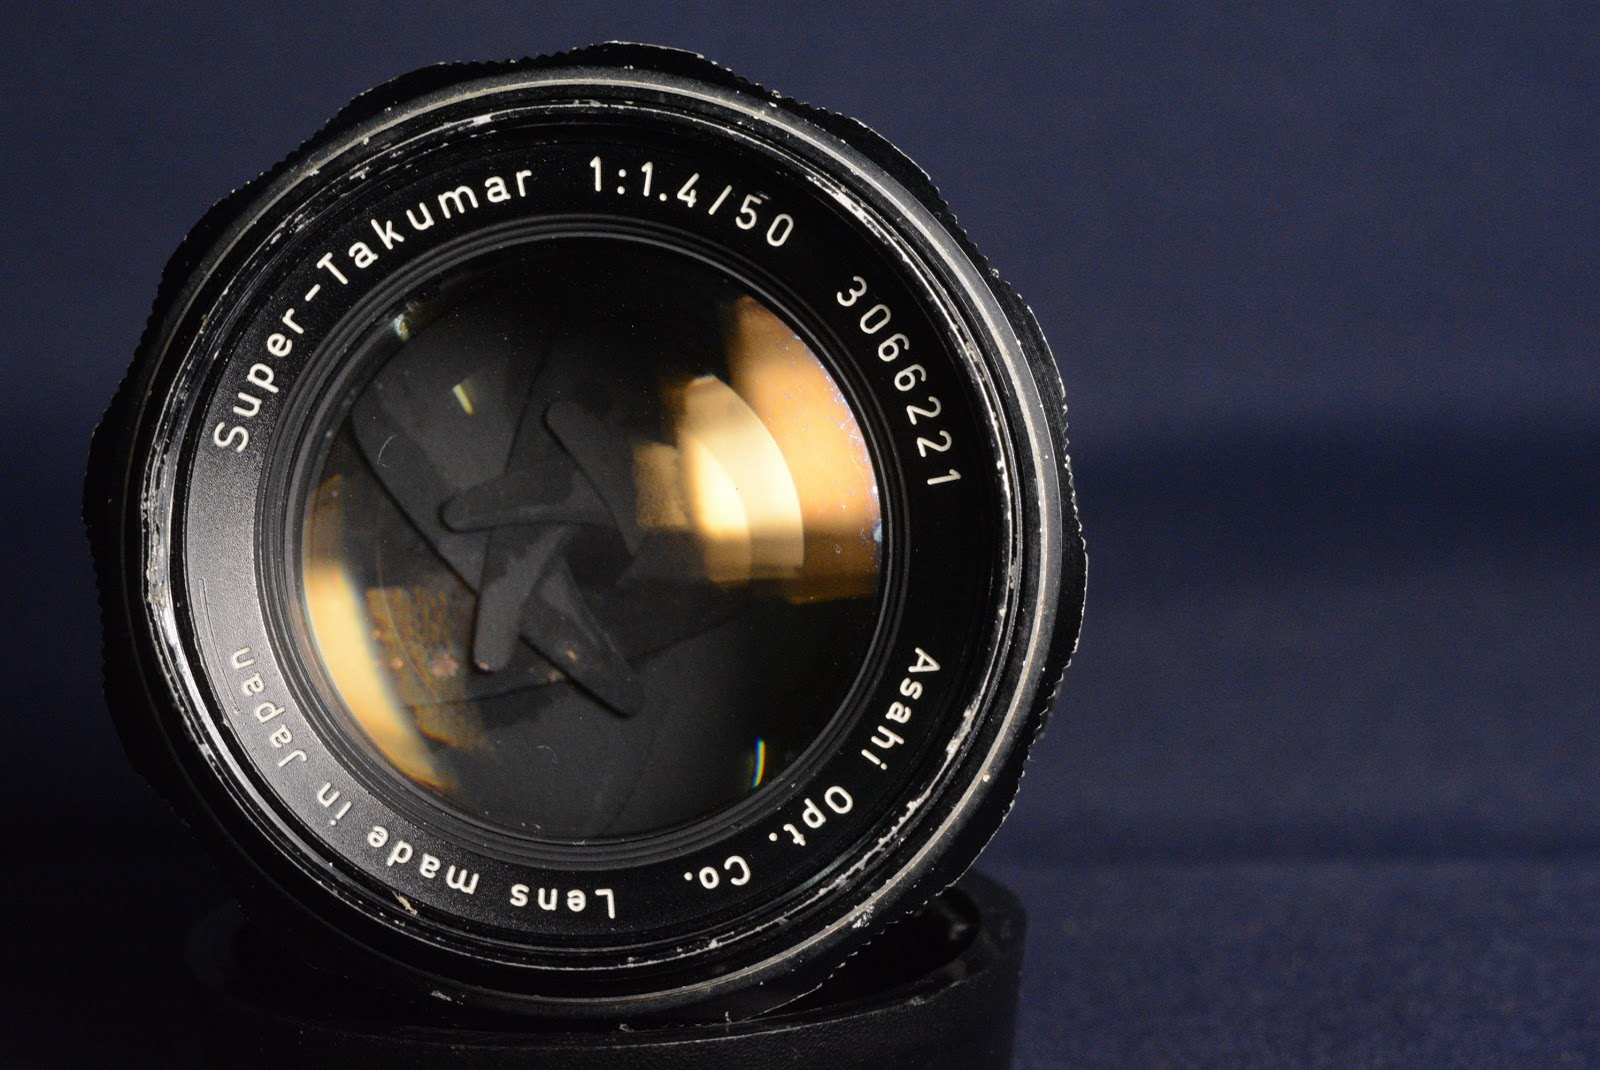 Super Takumar 50mm f/1 4: Which Version? | Lens Shatter By